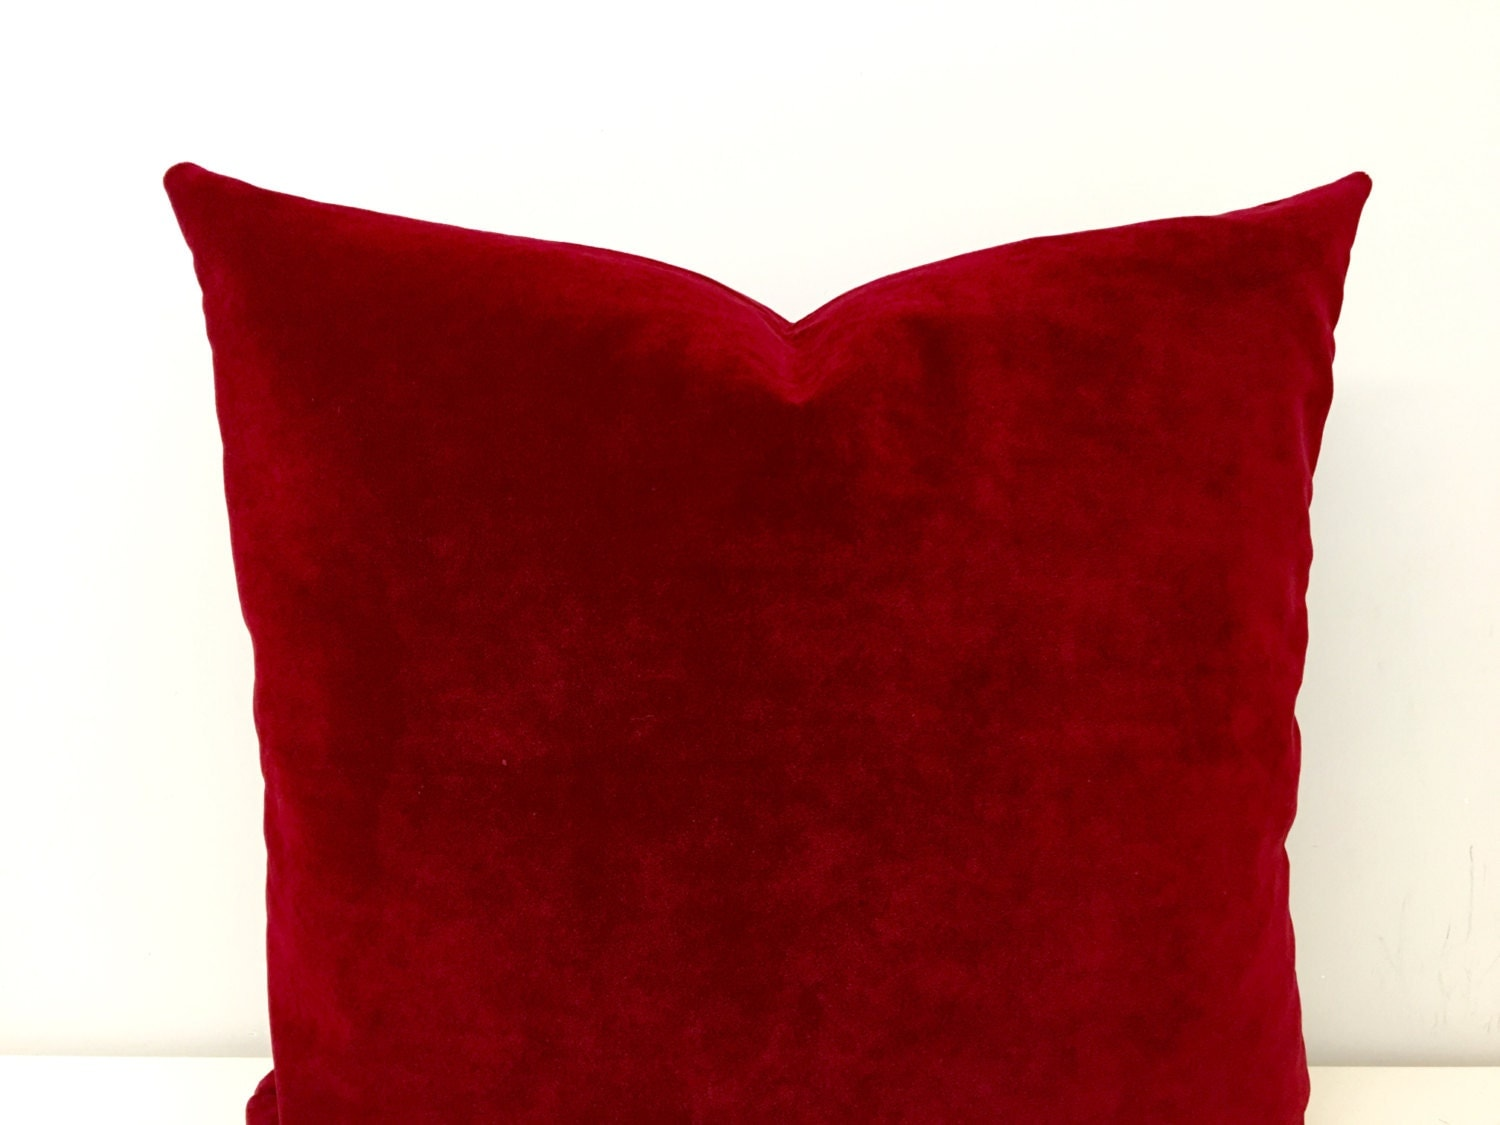 Red Velvet Decorative Pillows : Red velvet pillow cover cushions Decorative Pillows by cottonsema